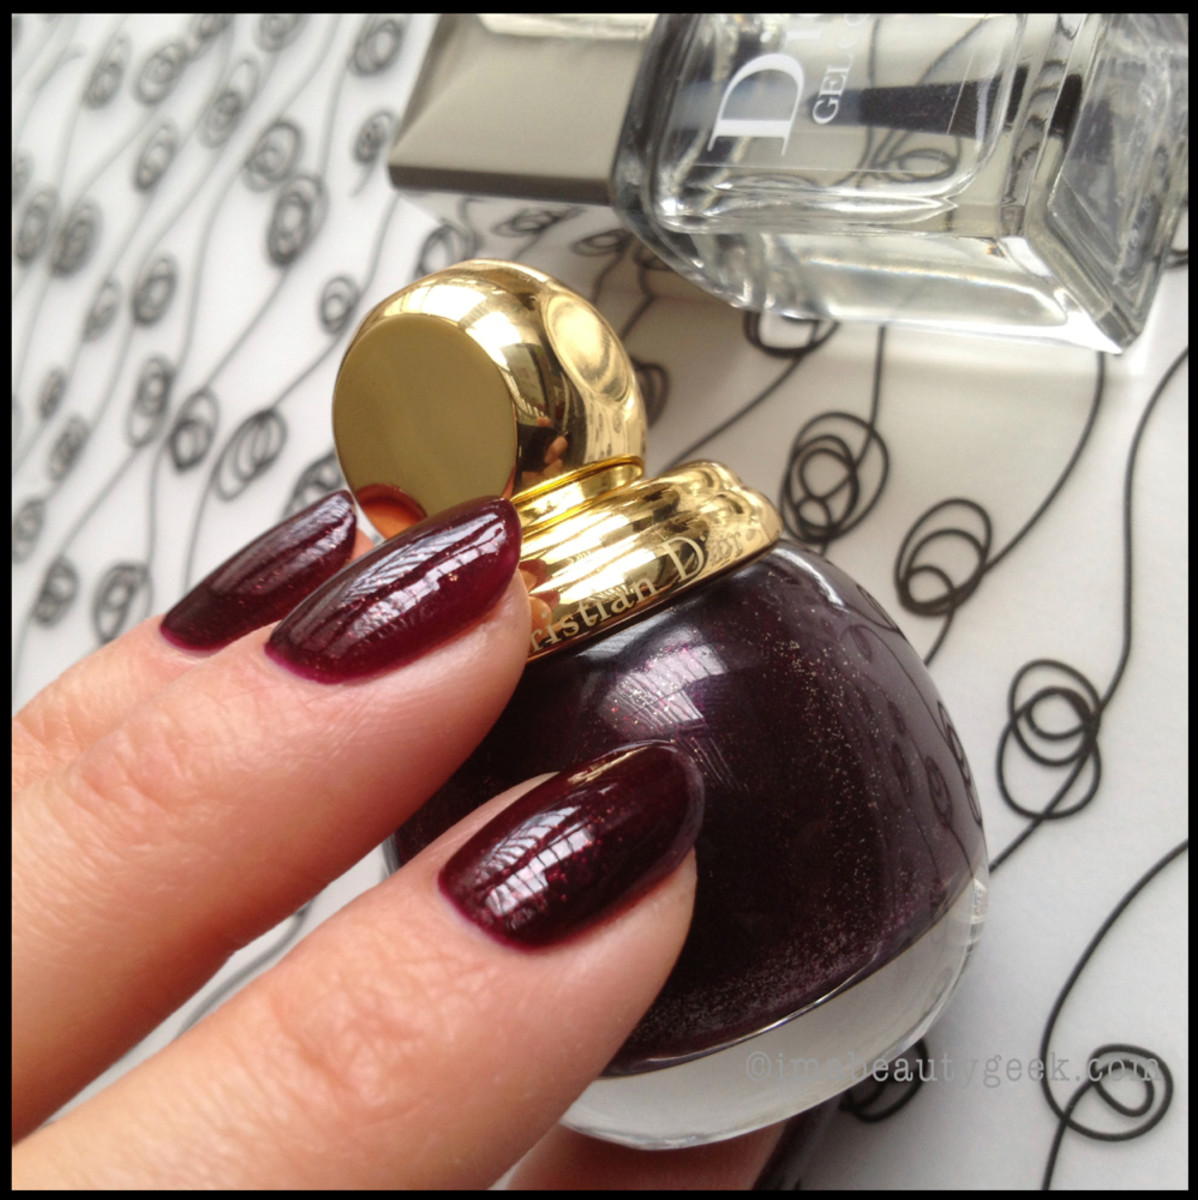 Dior Holiday 2013 Dior Diorific Vernis in Minuit 2